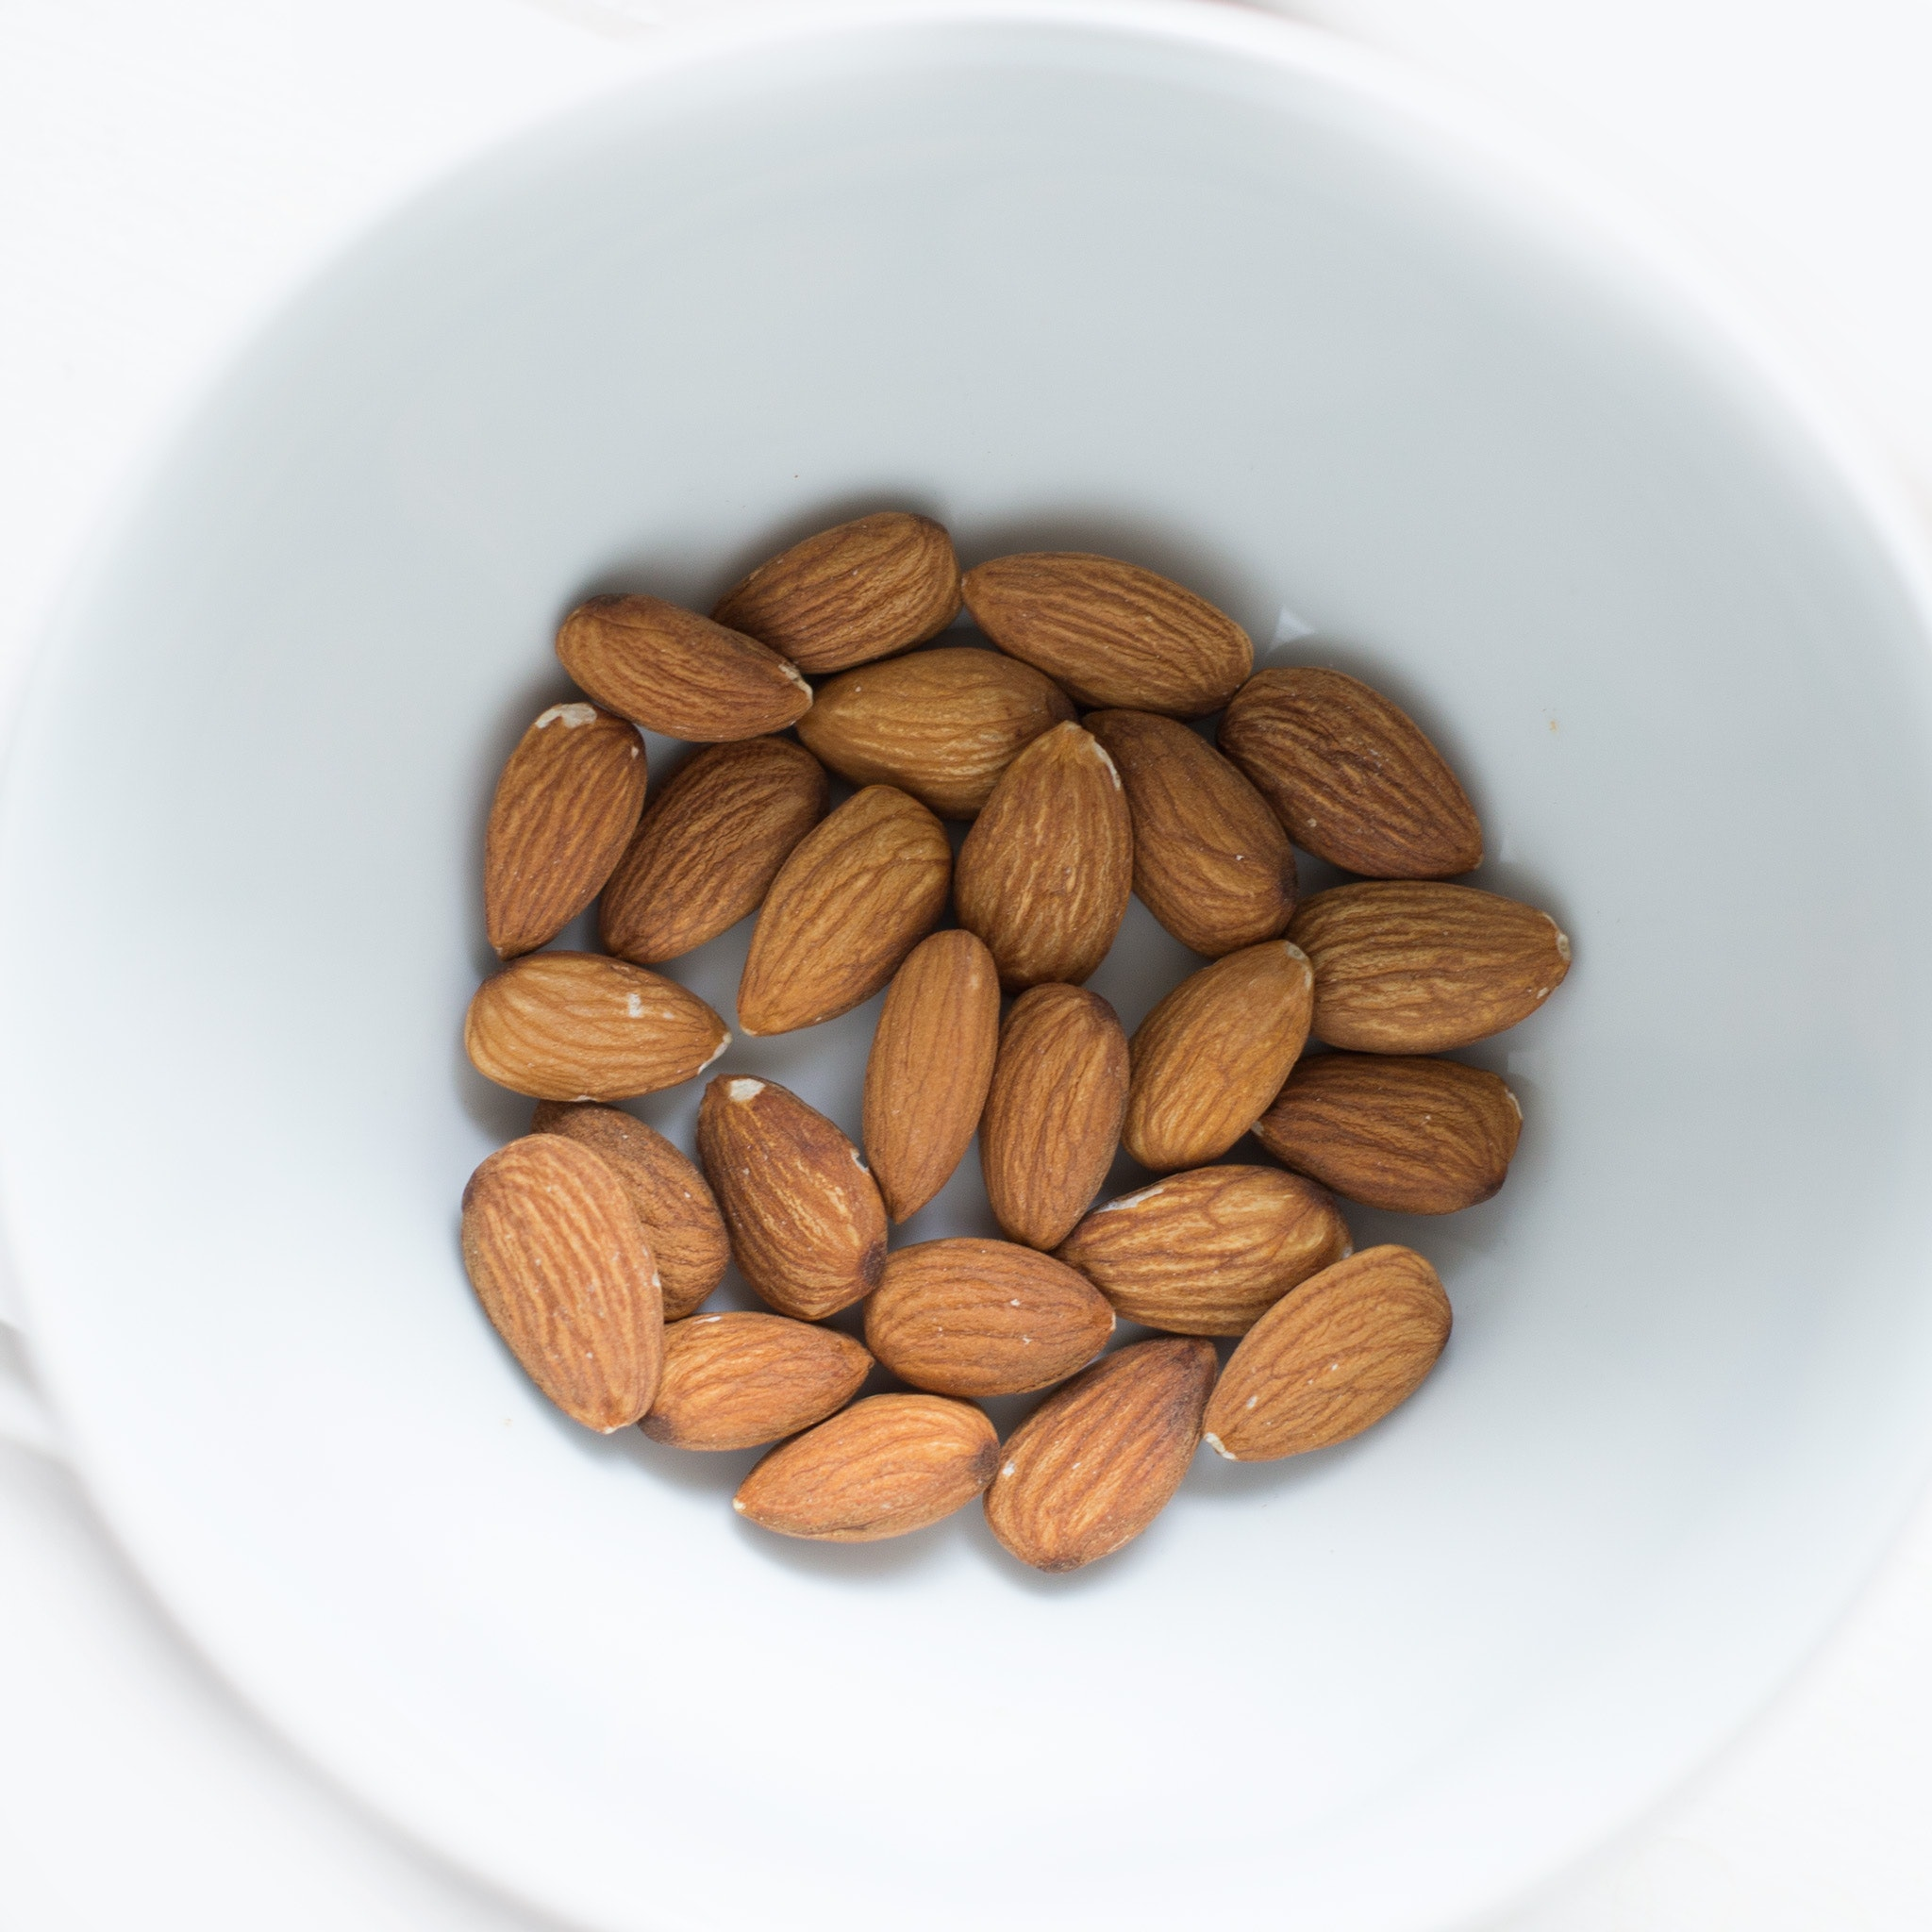 almond-almonds-food-57042.jpg